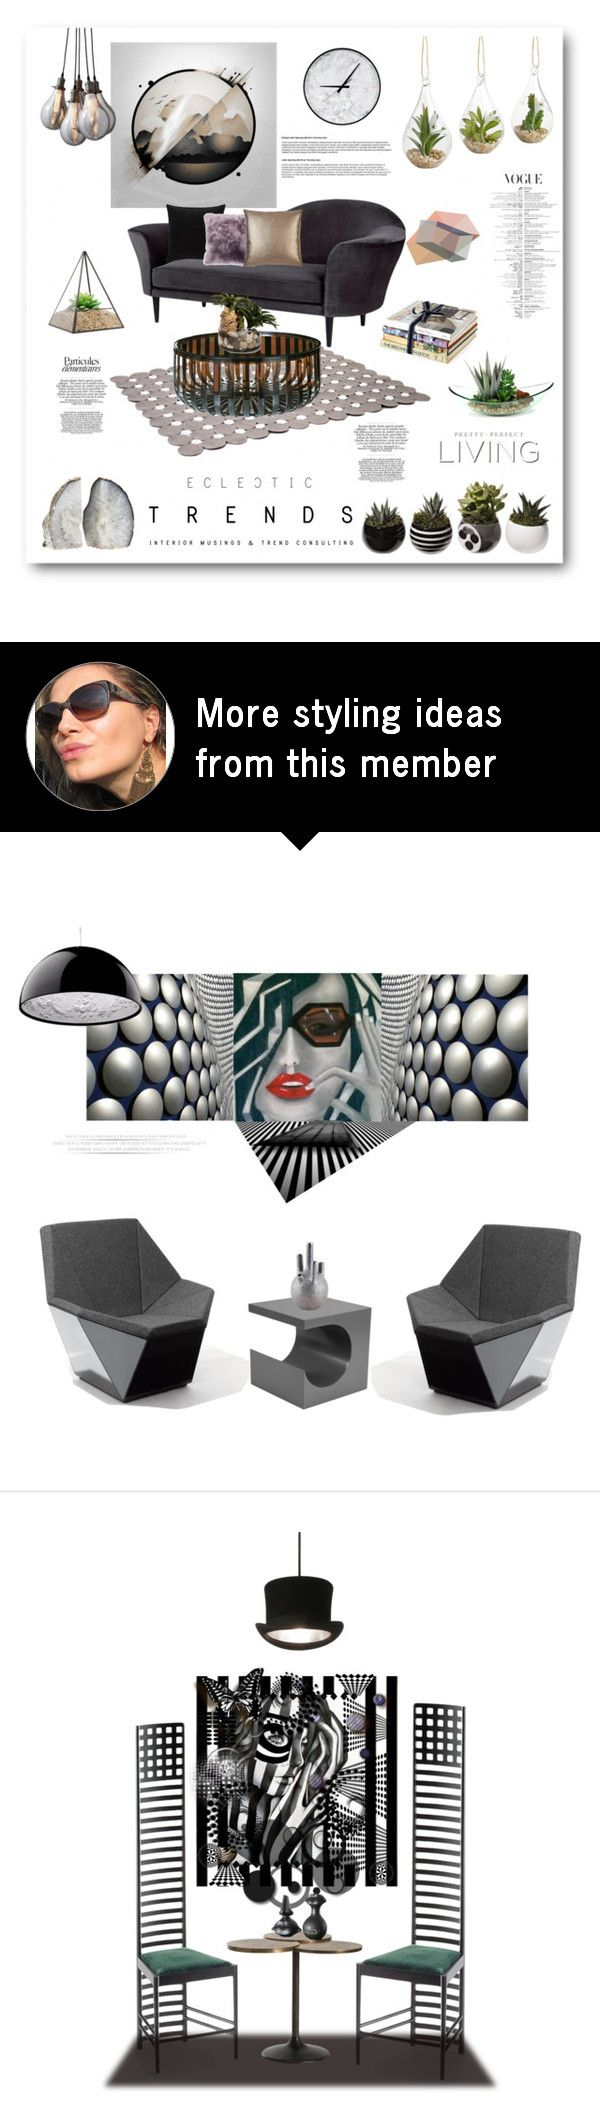 """""""Eclectic trends-Succulents"""" by zabead on Polyvore featuring interior, interiors, interior design, home, home decor, interior decorating, Gubi, JAG Zoeppritz, Barneys New York and ADZif"""